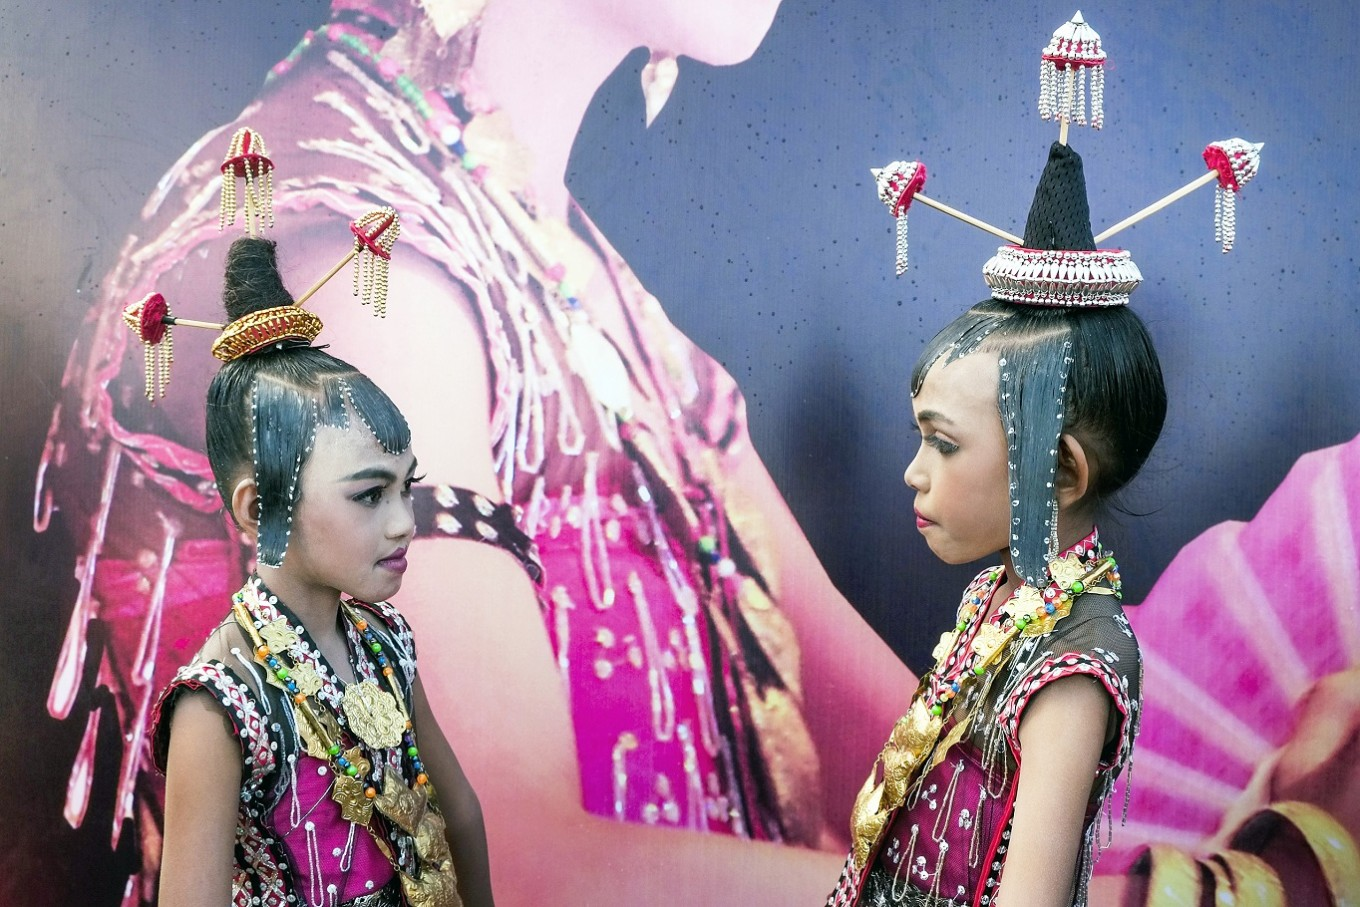 Face to face: Young girls dressed in traditional costumes strikes a pose before the Karia'a ceremony.